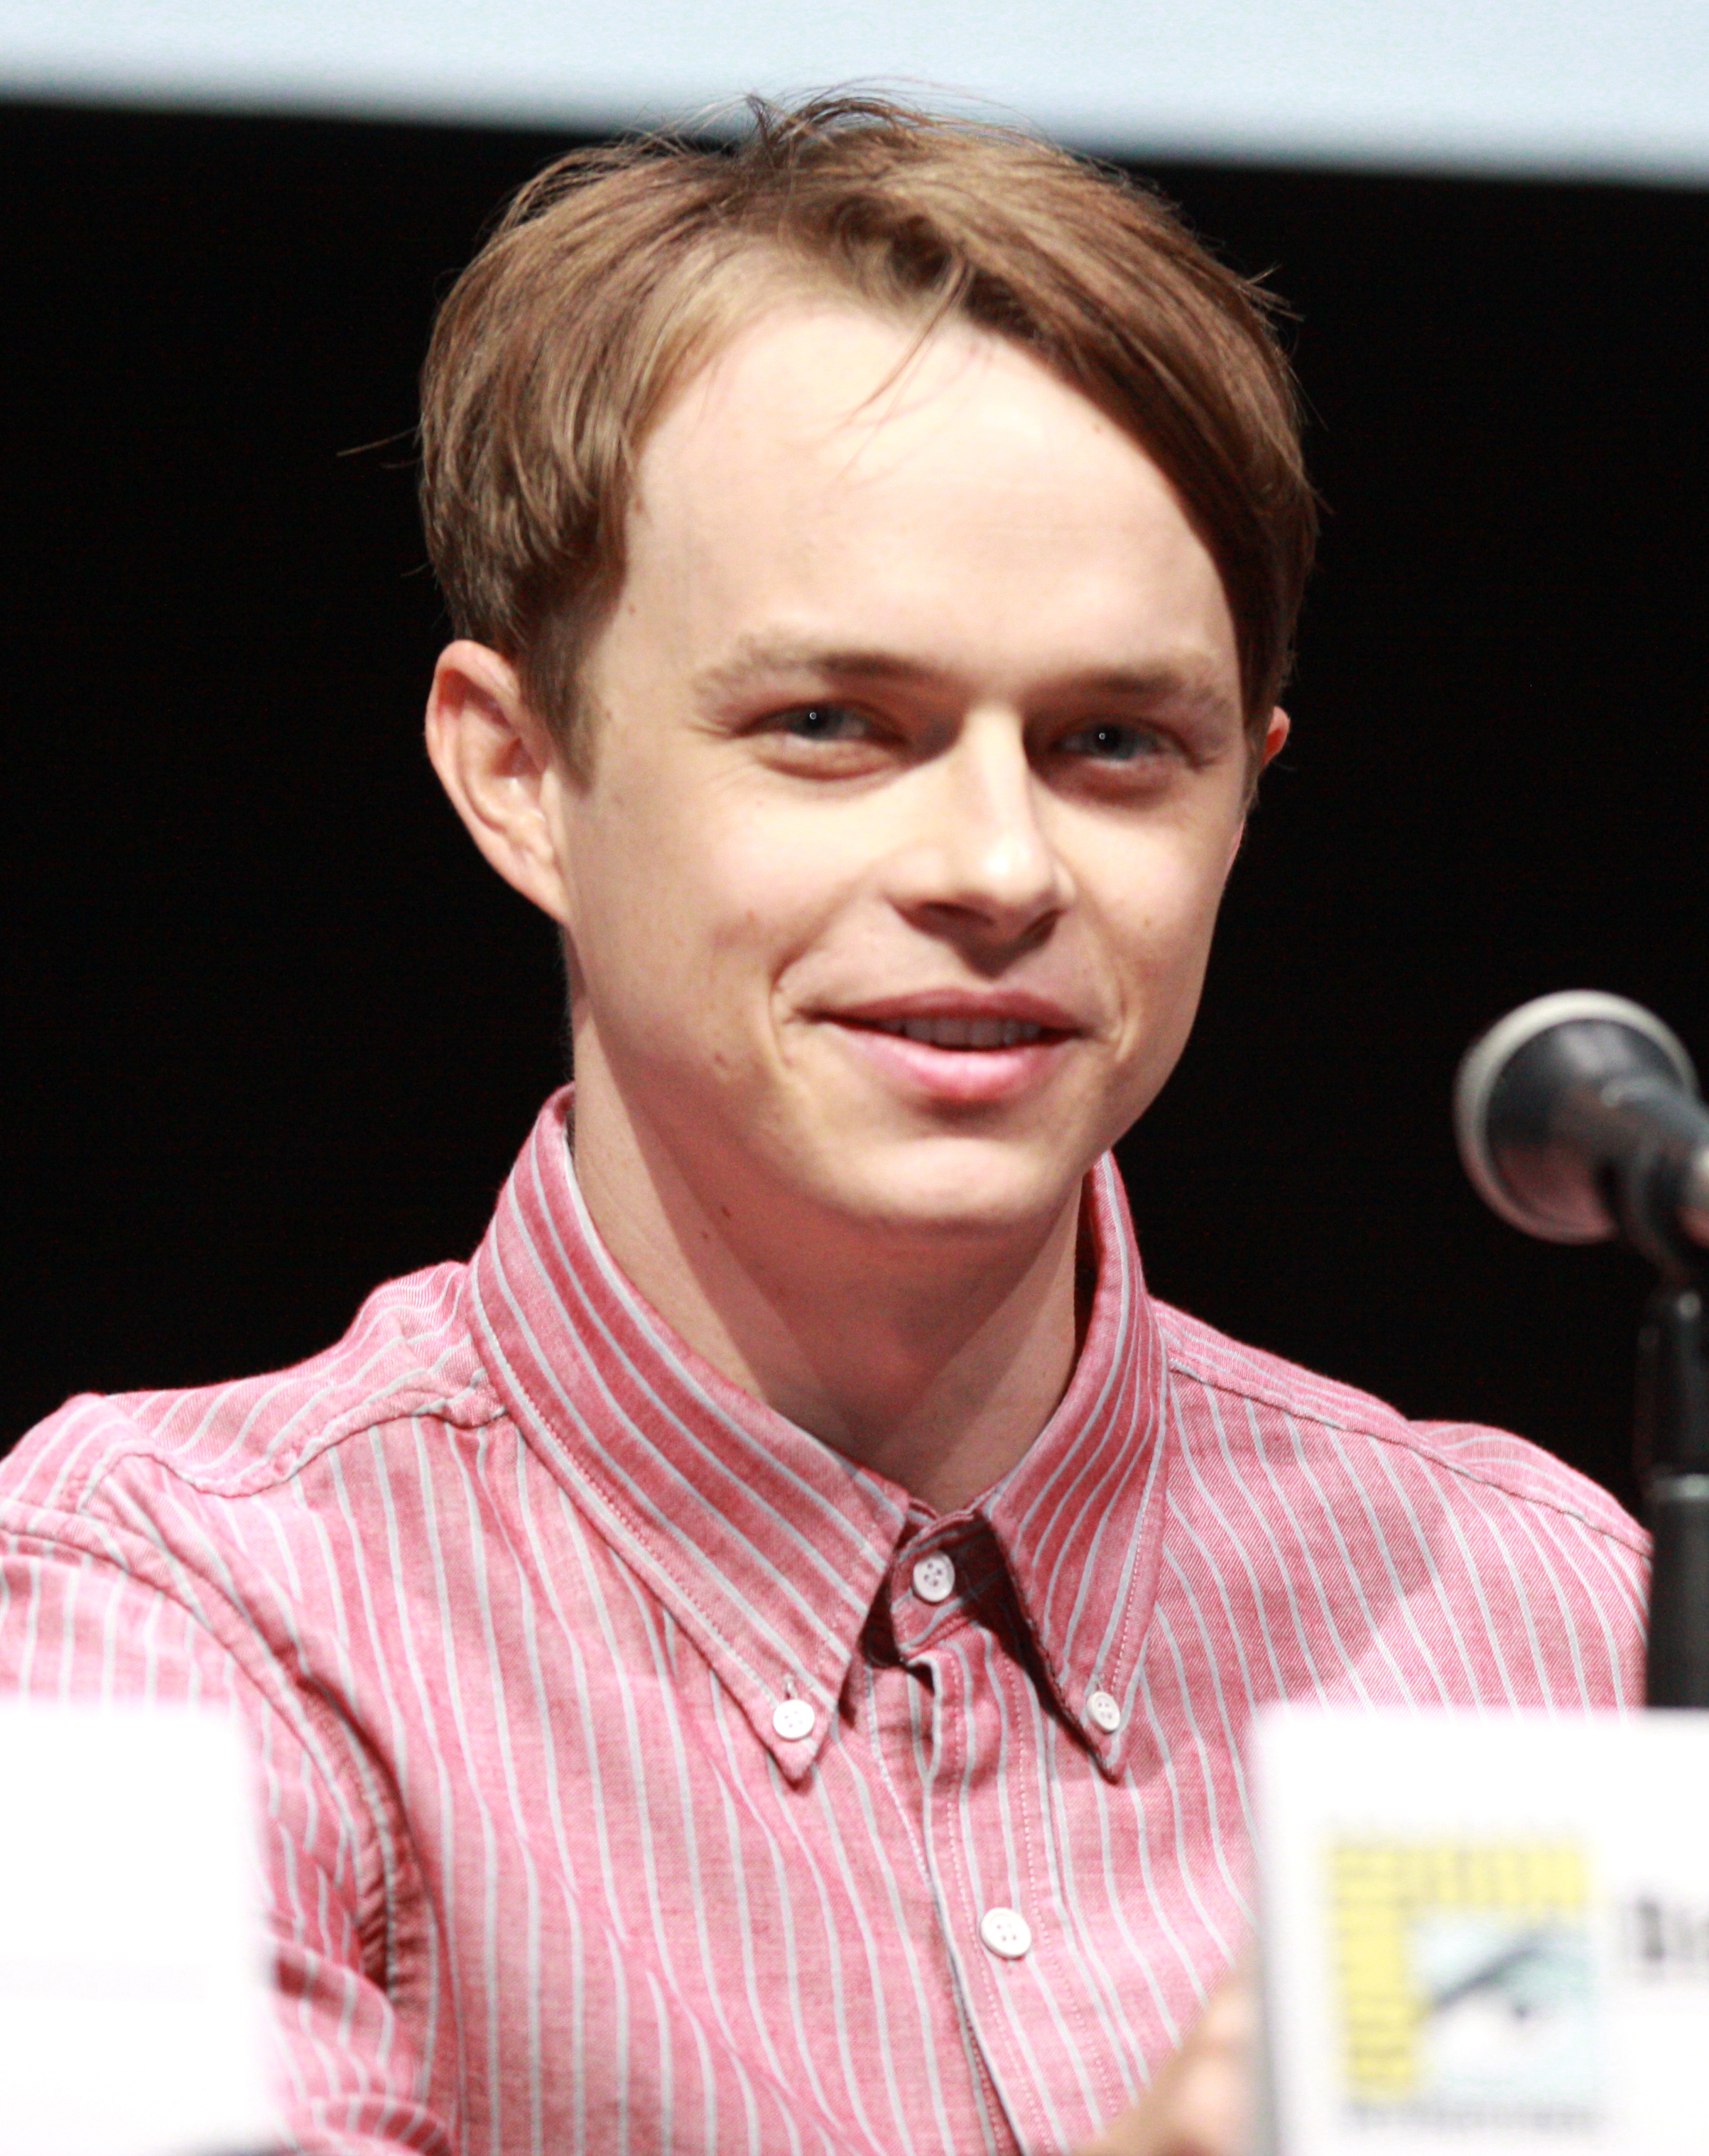 The 32-year old son of father Jeff and mother Cynthia Boscia Dane DeHaan in 2018 photo. Dane DeHaan earned a 0.5 million dollar salary - leaving the net worth at 2 million in 2018